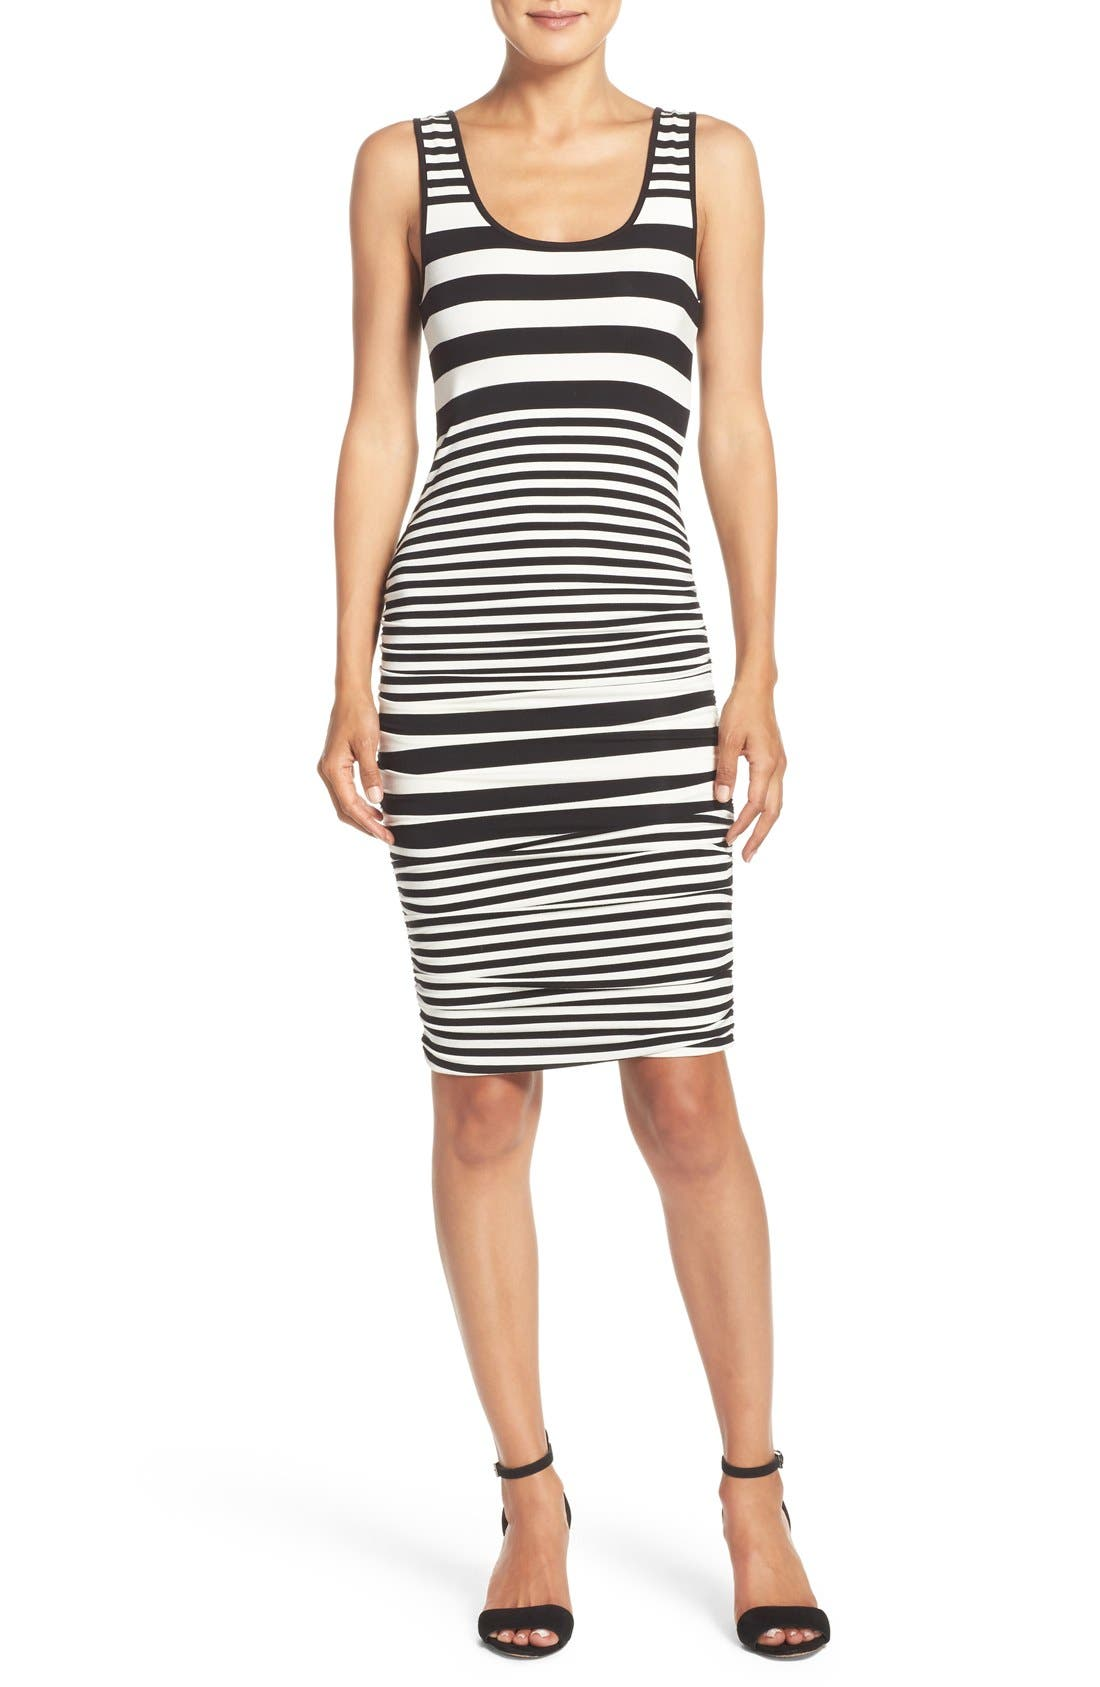 Alternate Image 1 Selected - Felicity & Coco Stripe Ruched Jersey Tank Dress (Regular & Petite) (Nordstrom Exclusive)